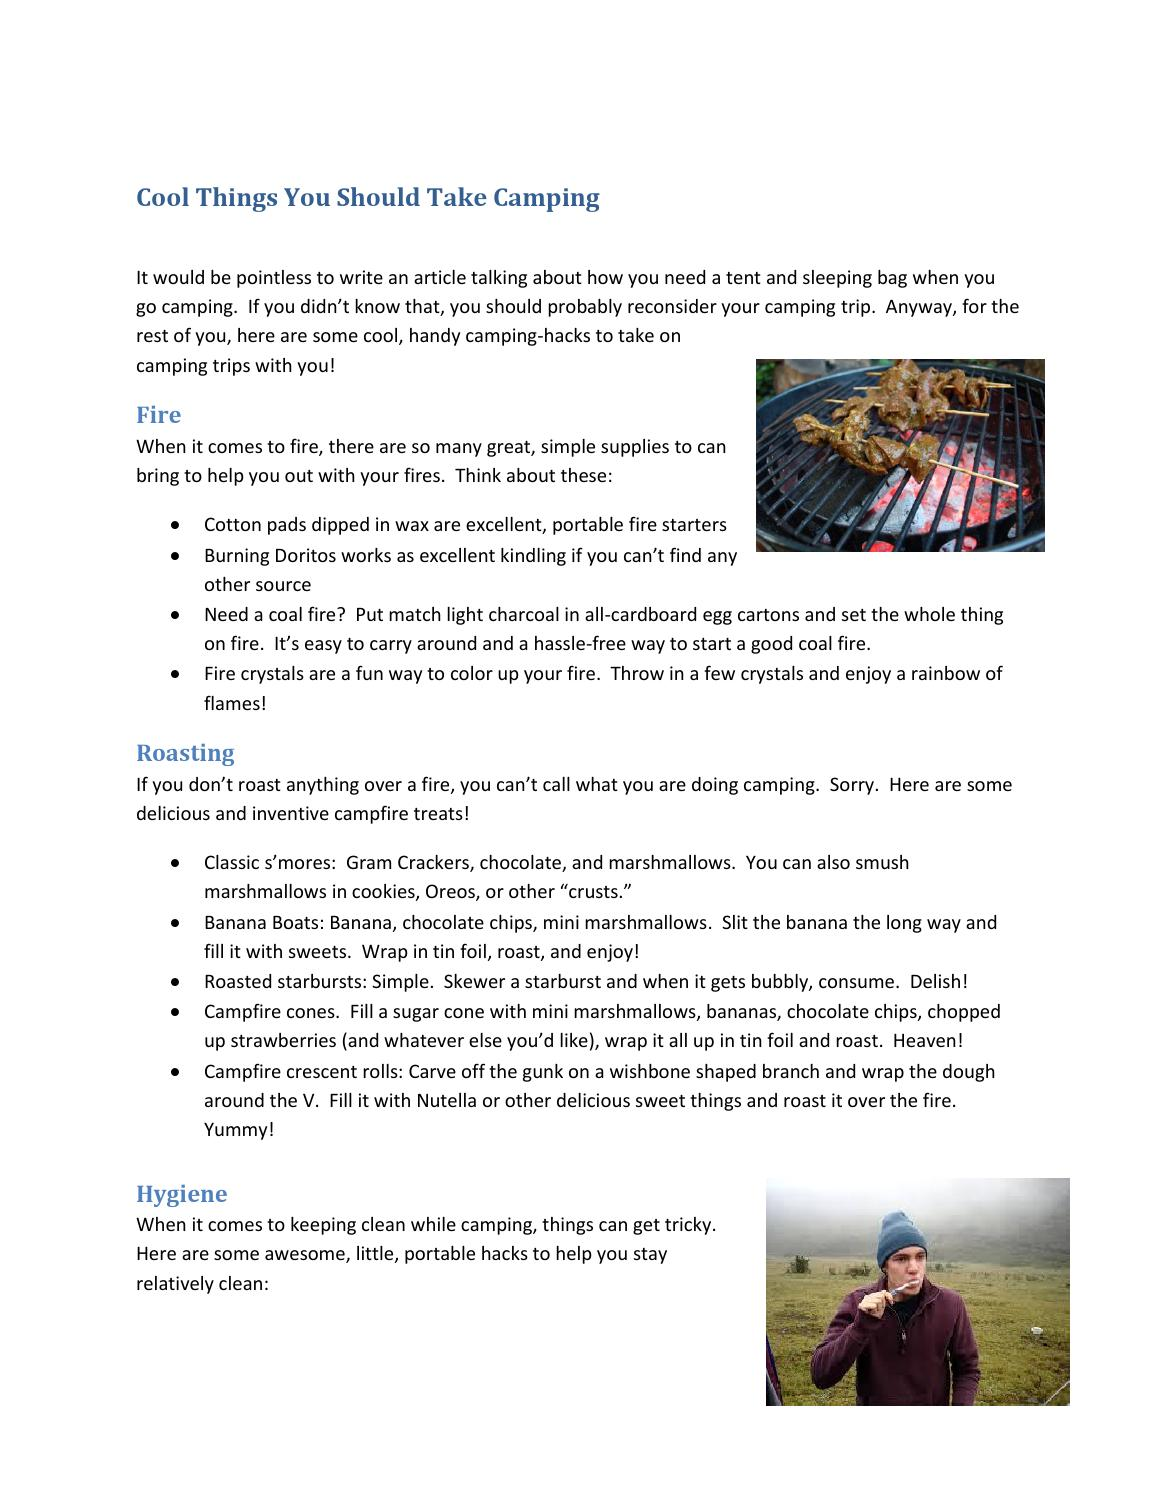 cool things you should take camping by mcclain my - issuu